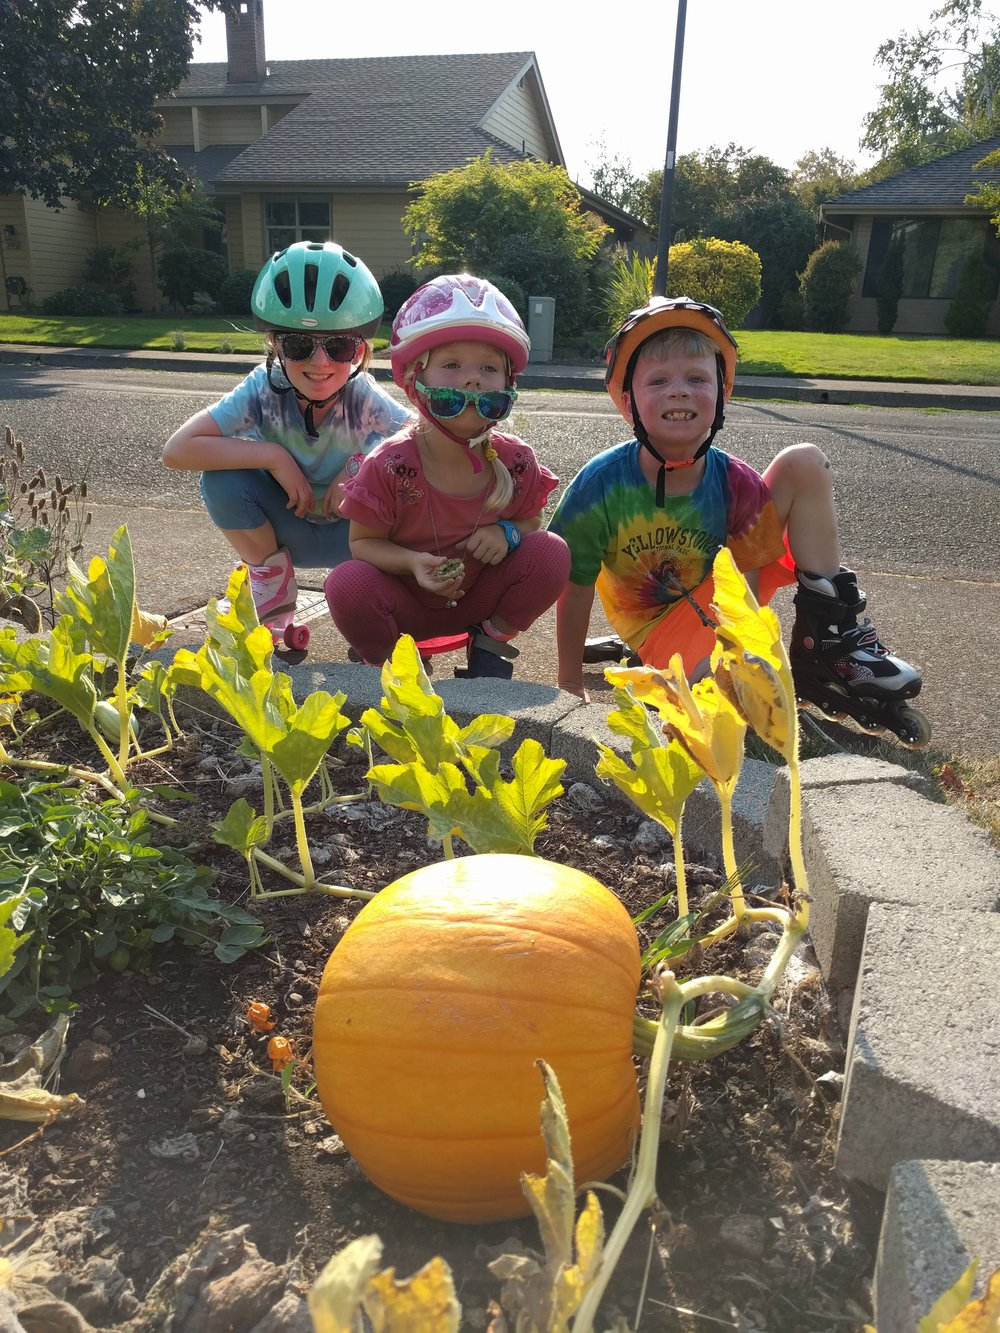 The handful of seeds that were planted resulted in 15 pumpkins! The kids were very excited at the bountiful harvest and each chose the pumpkin they want to keep to carve before Halloween.